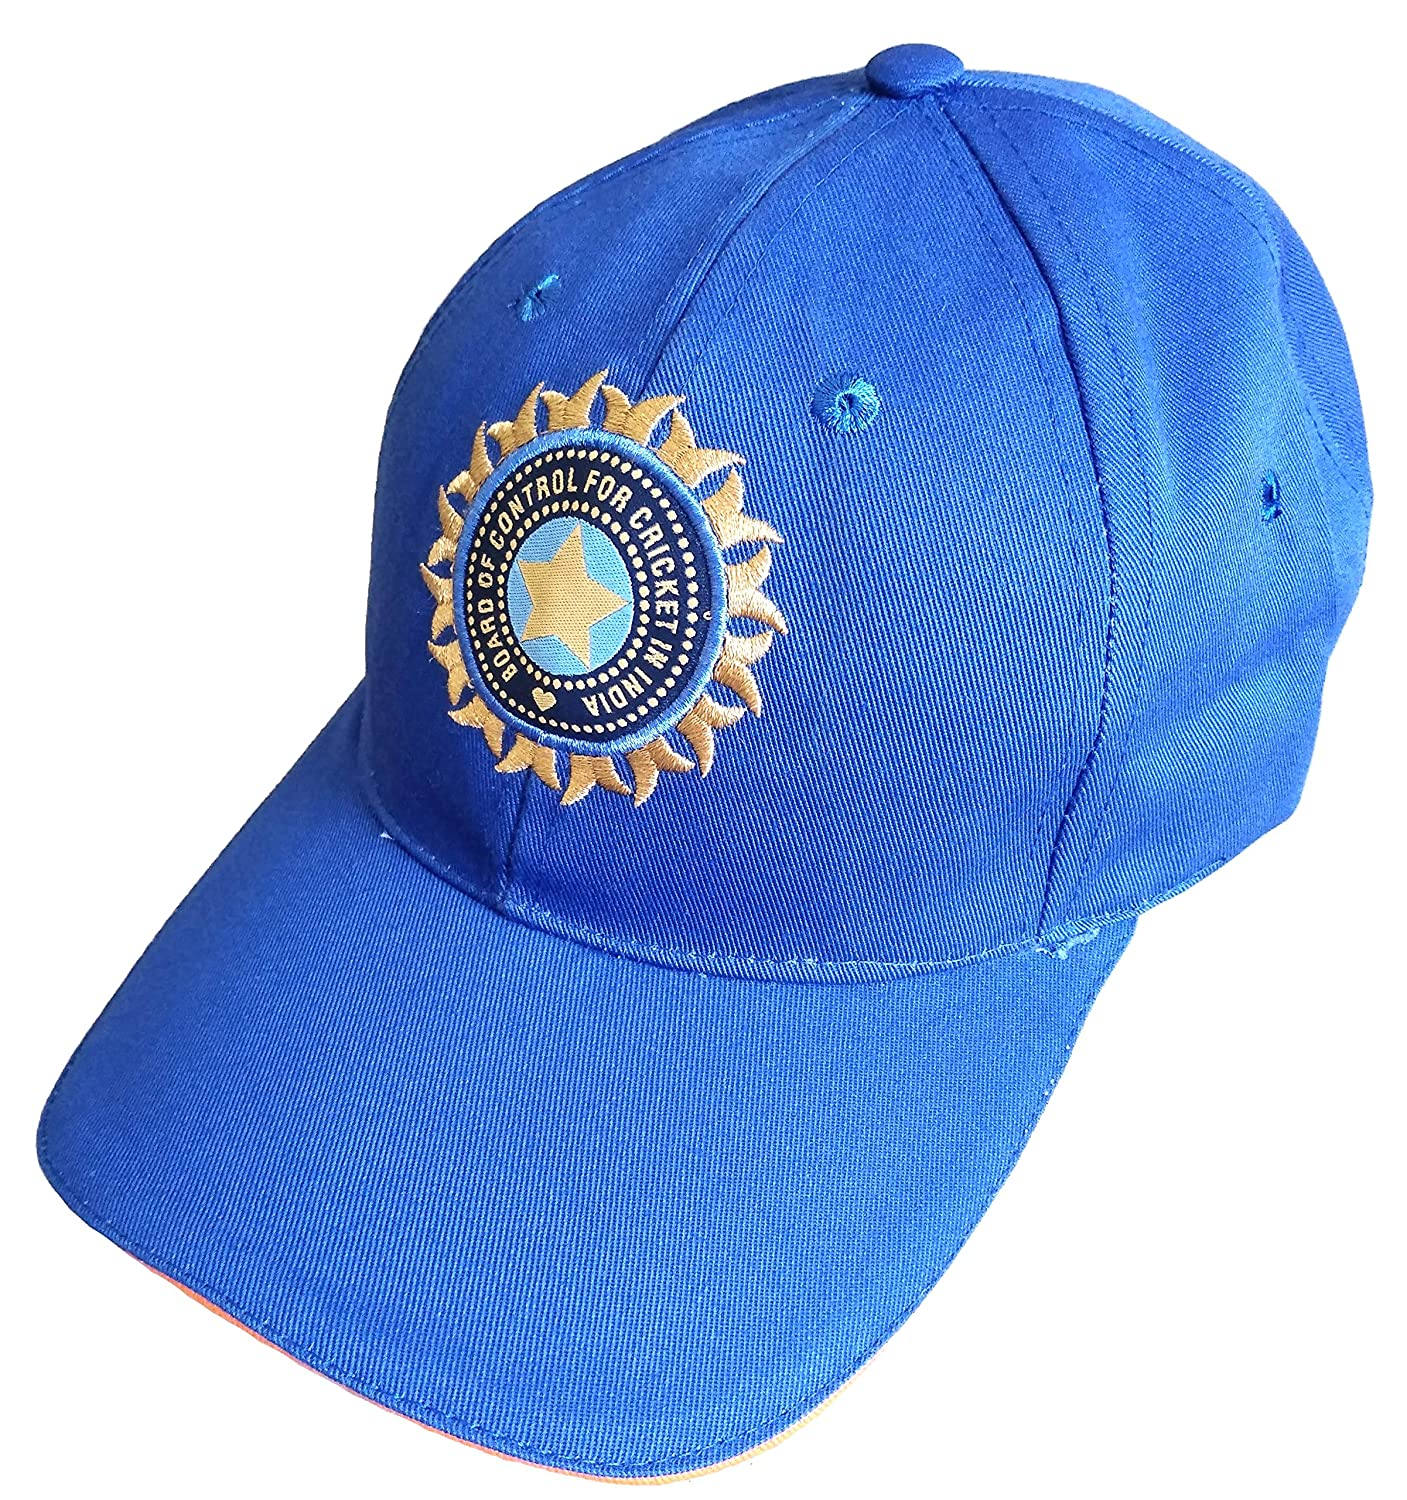 ebcb0b7d79b Buy hhumanmakerr Men s Cotton Team India Supporter Cricket Cap (Blue ...